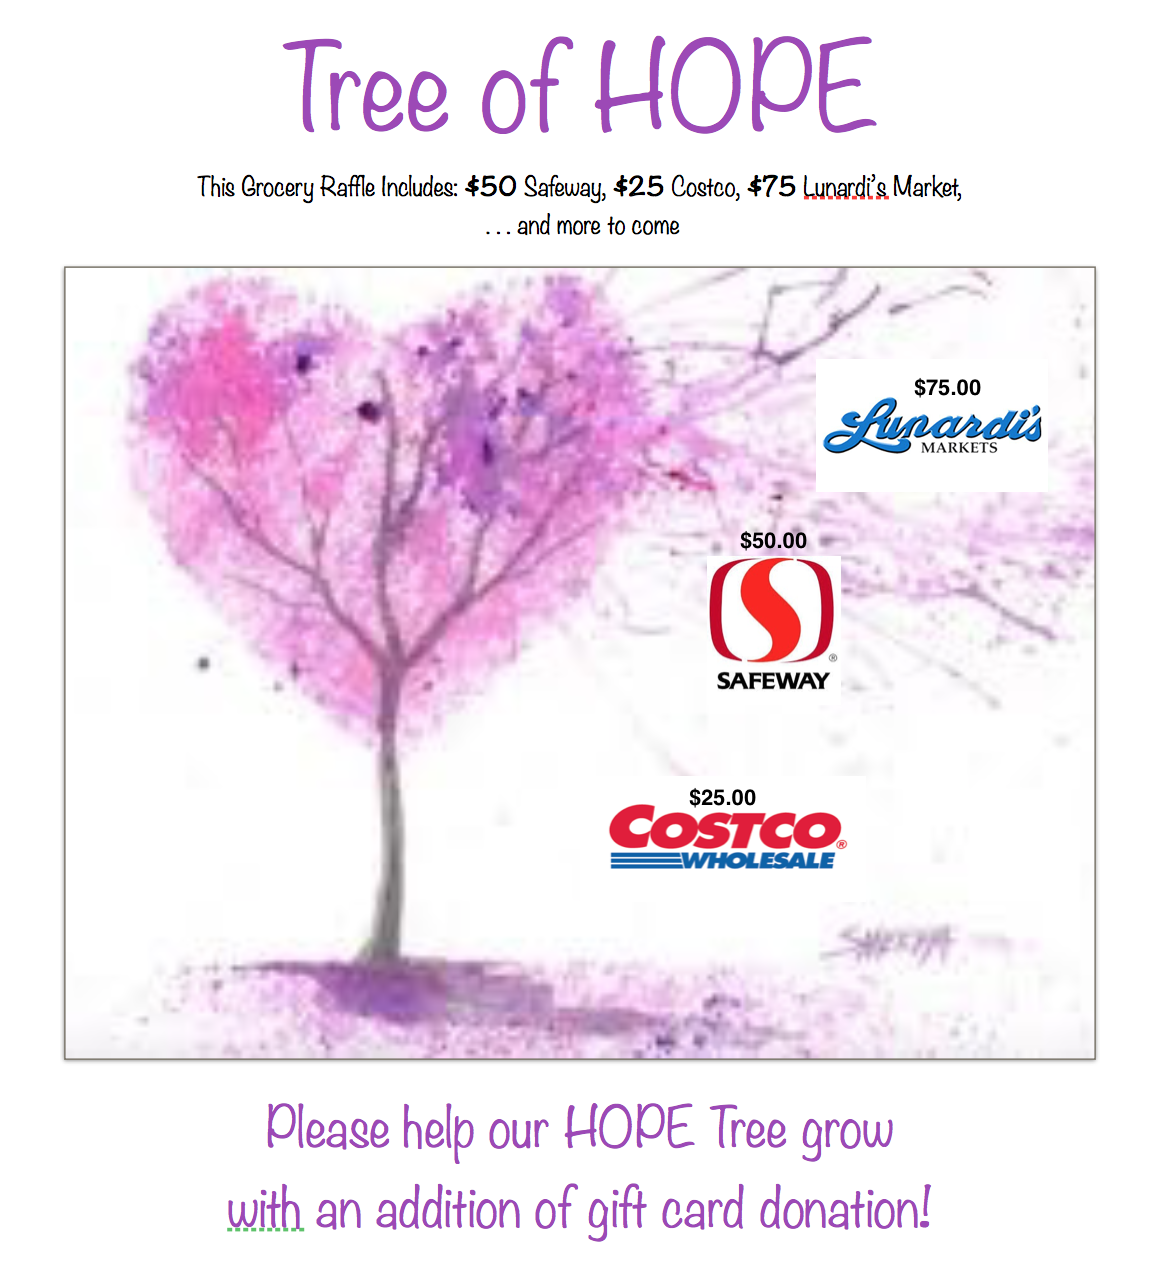 TreeofHope_Grocery_1.18.19.png